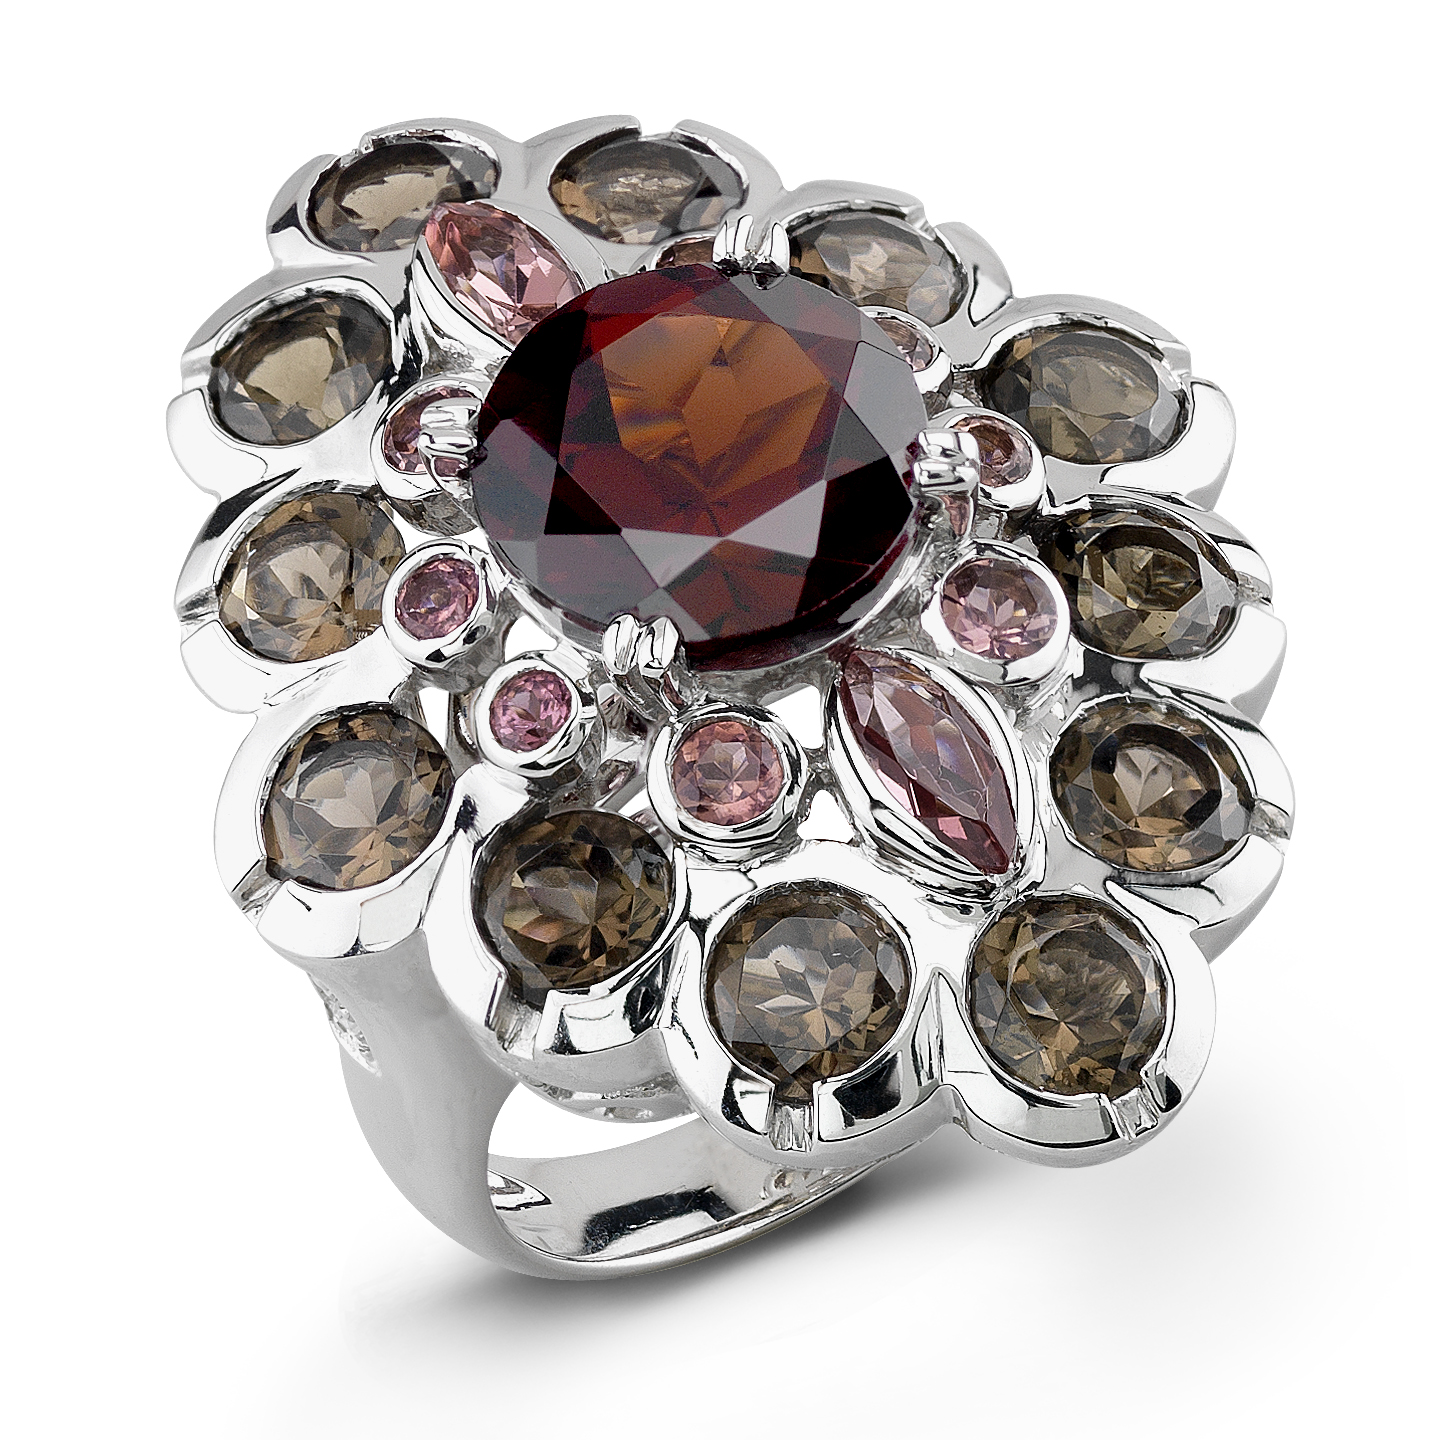 Badgley Mischka Multi Color Stone Ring by Zale